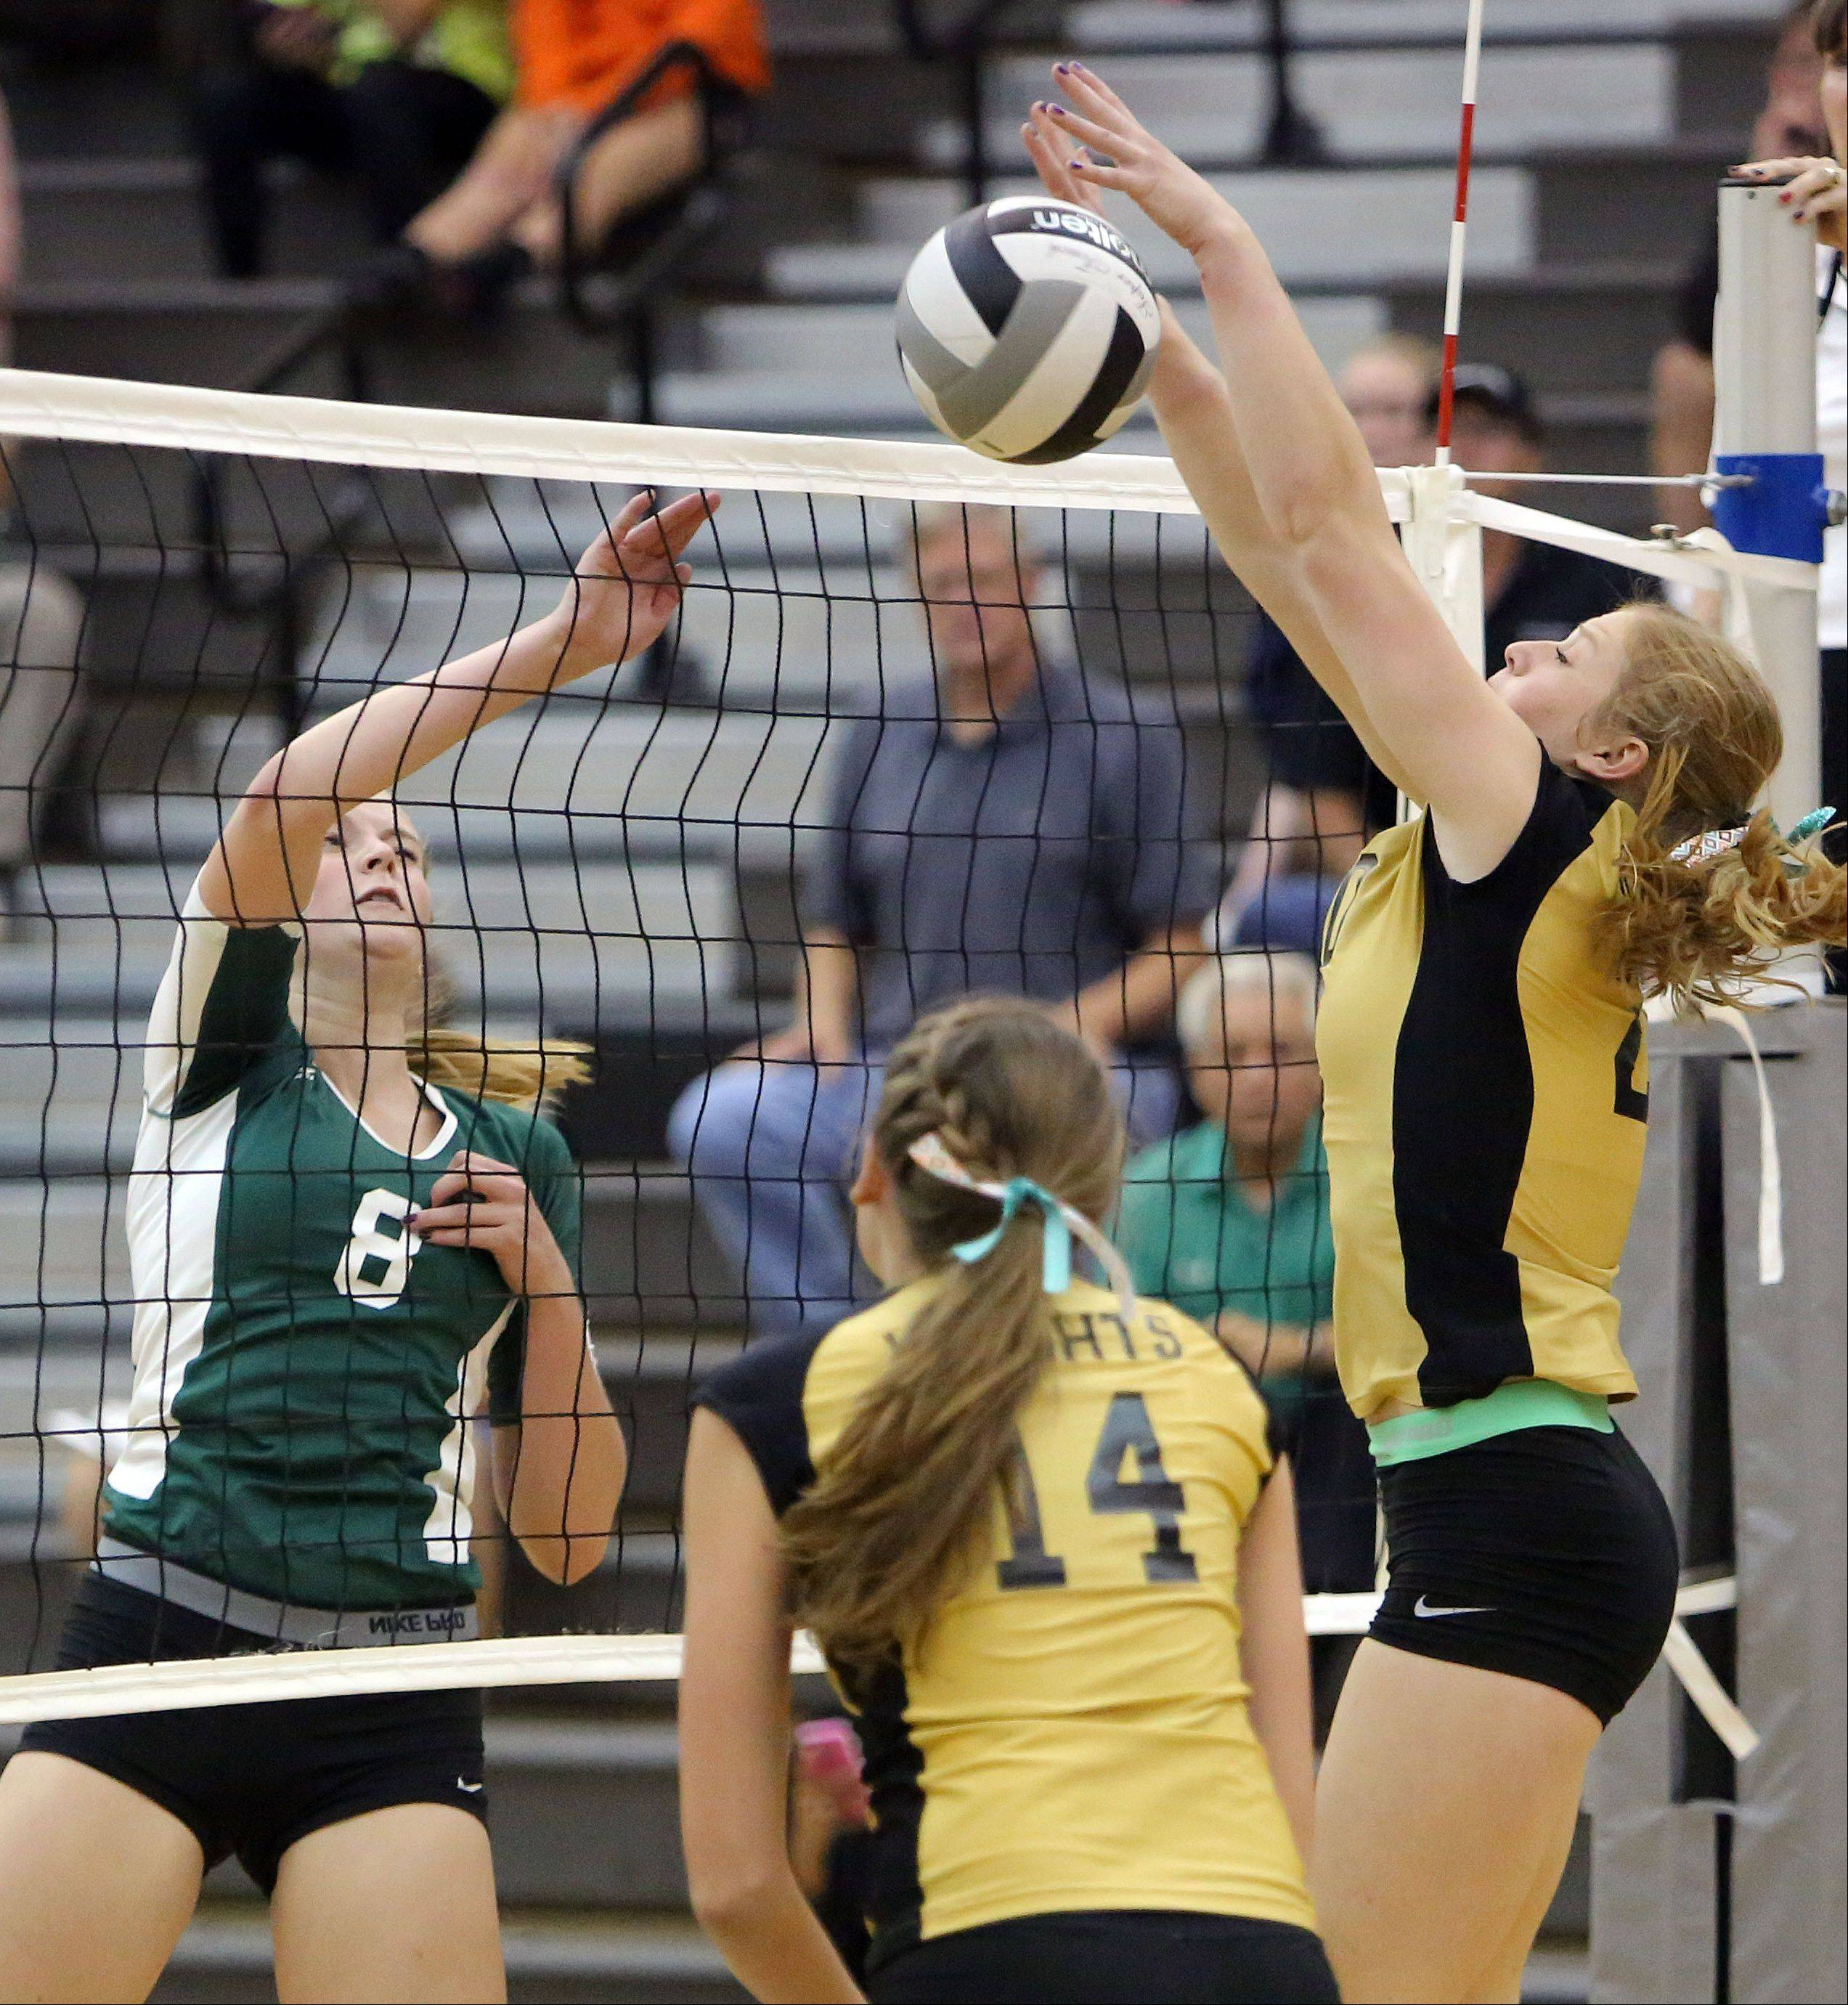 Grayslake Central's Alexandra Dahlstrom, left, and Grayslake North's Bailee Hardy meet at the net Tuesday at Grayslake North.